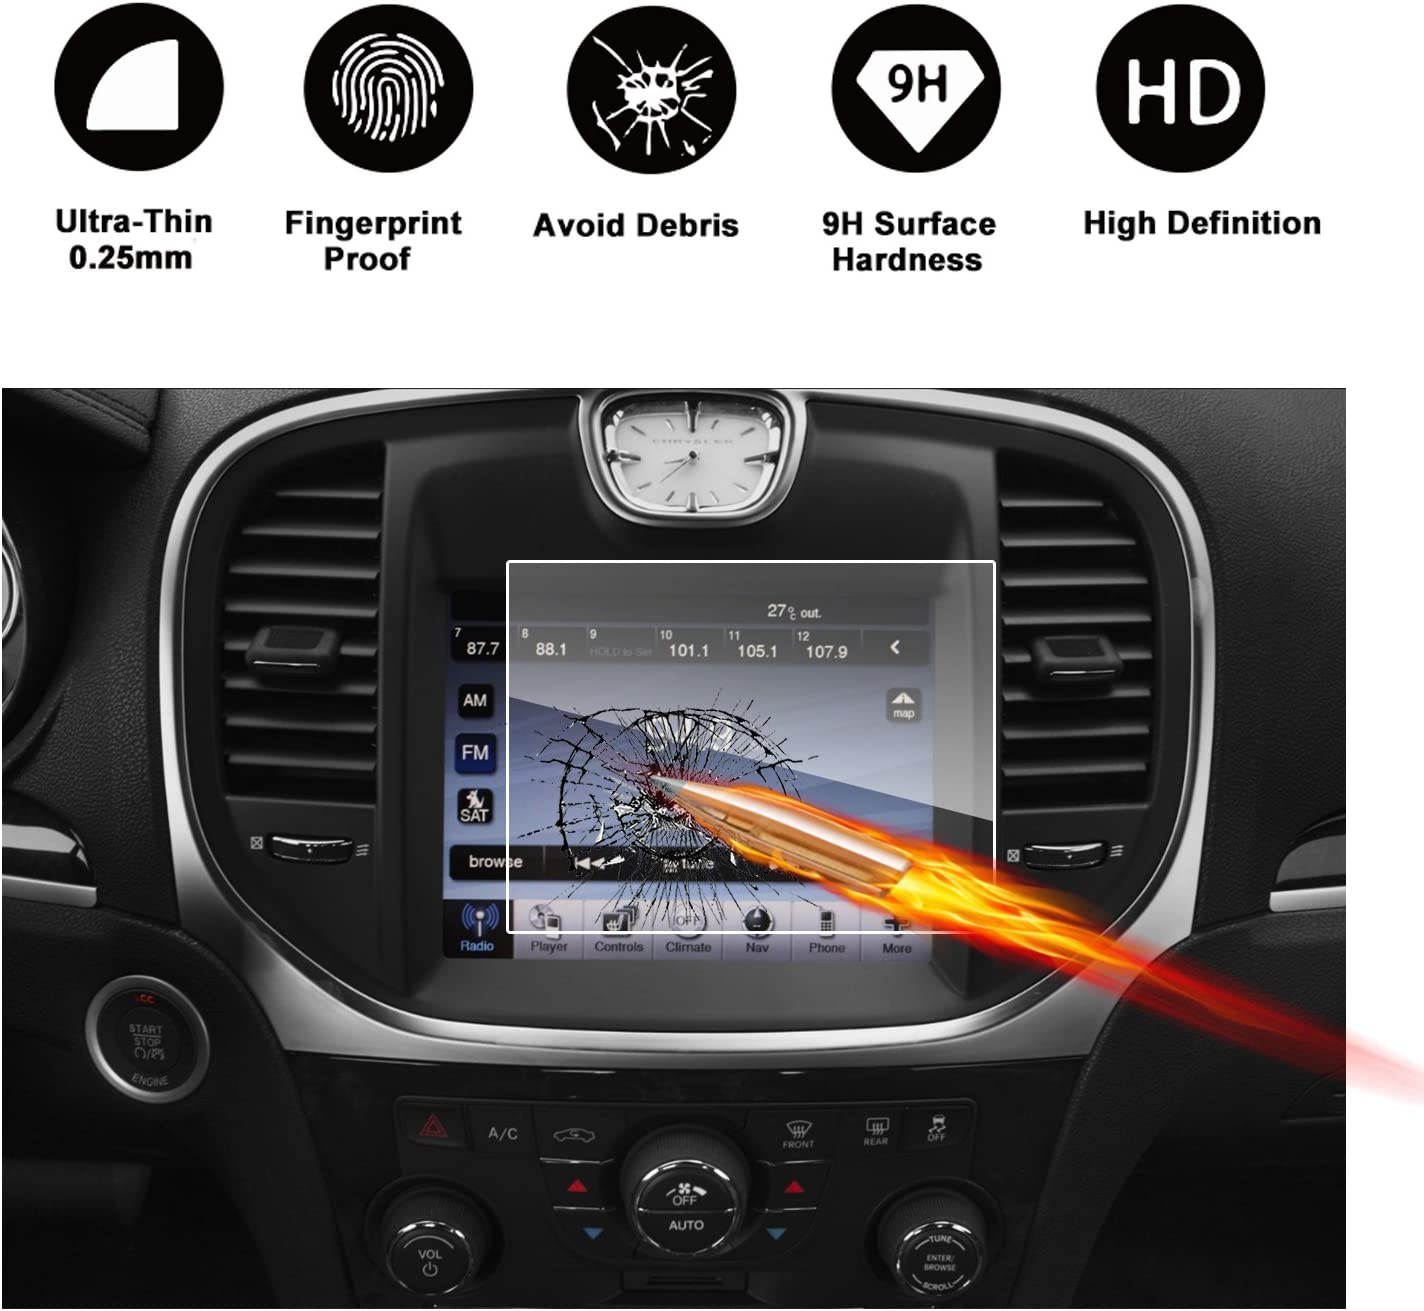 2011-2018 Chrysler 300 Uconnect 8.4 Inch Touch Screen Car Display Navigation Screen Protector RUIYA HD Clear TEMPERED GLASS Car In-Dash Screen Protective Film